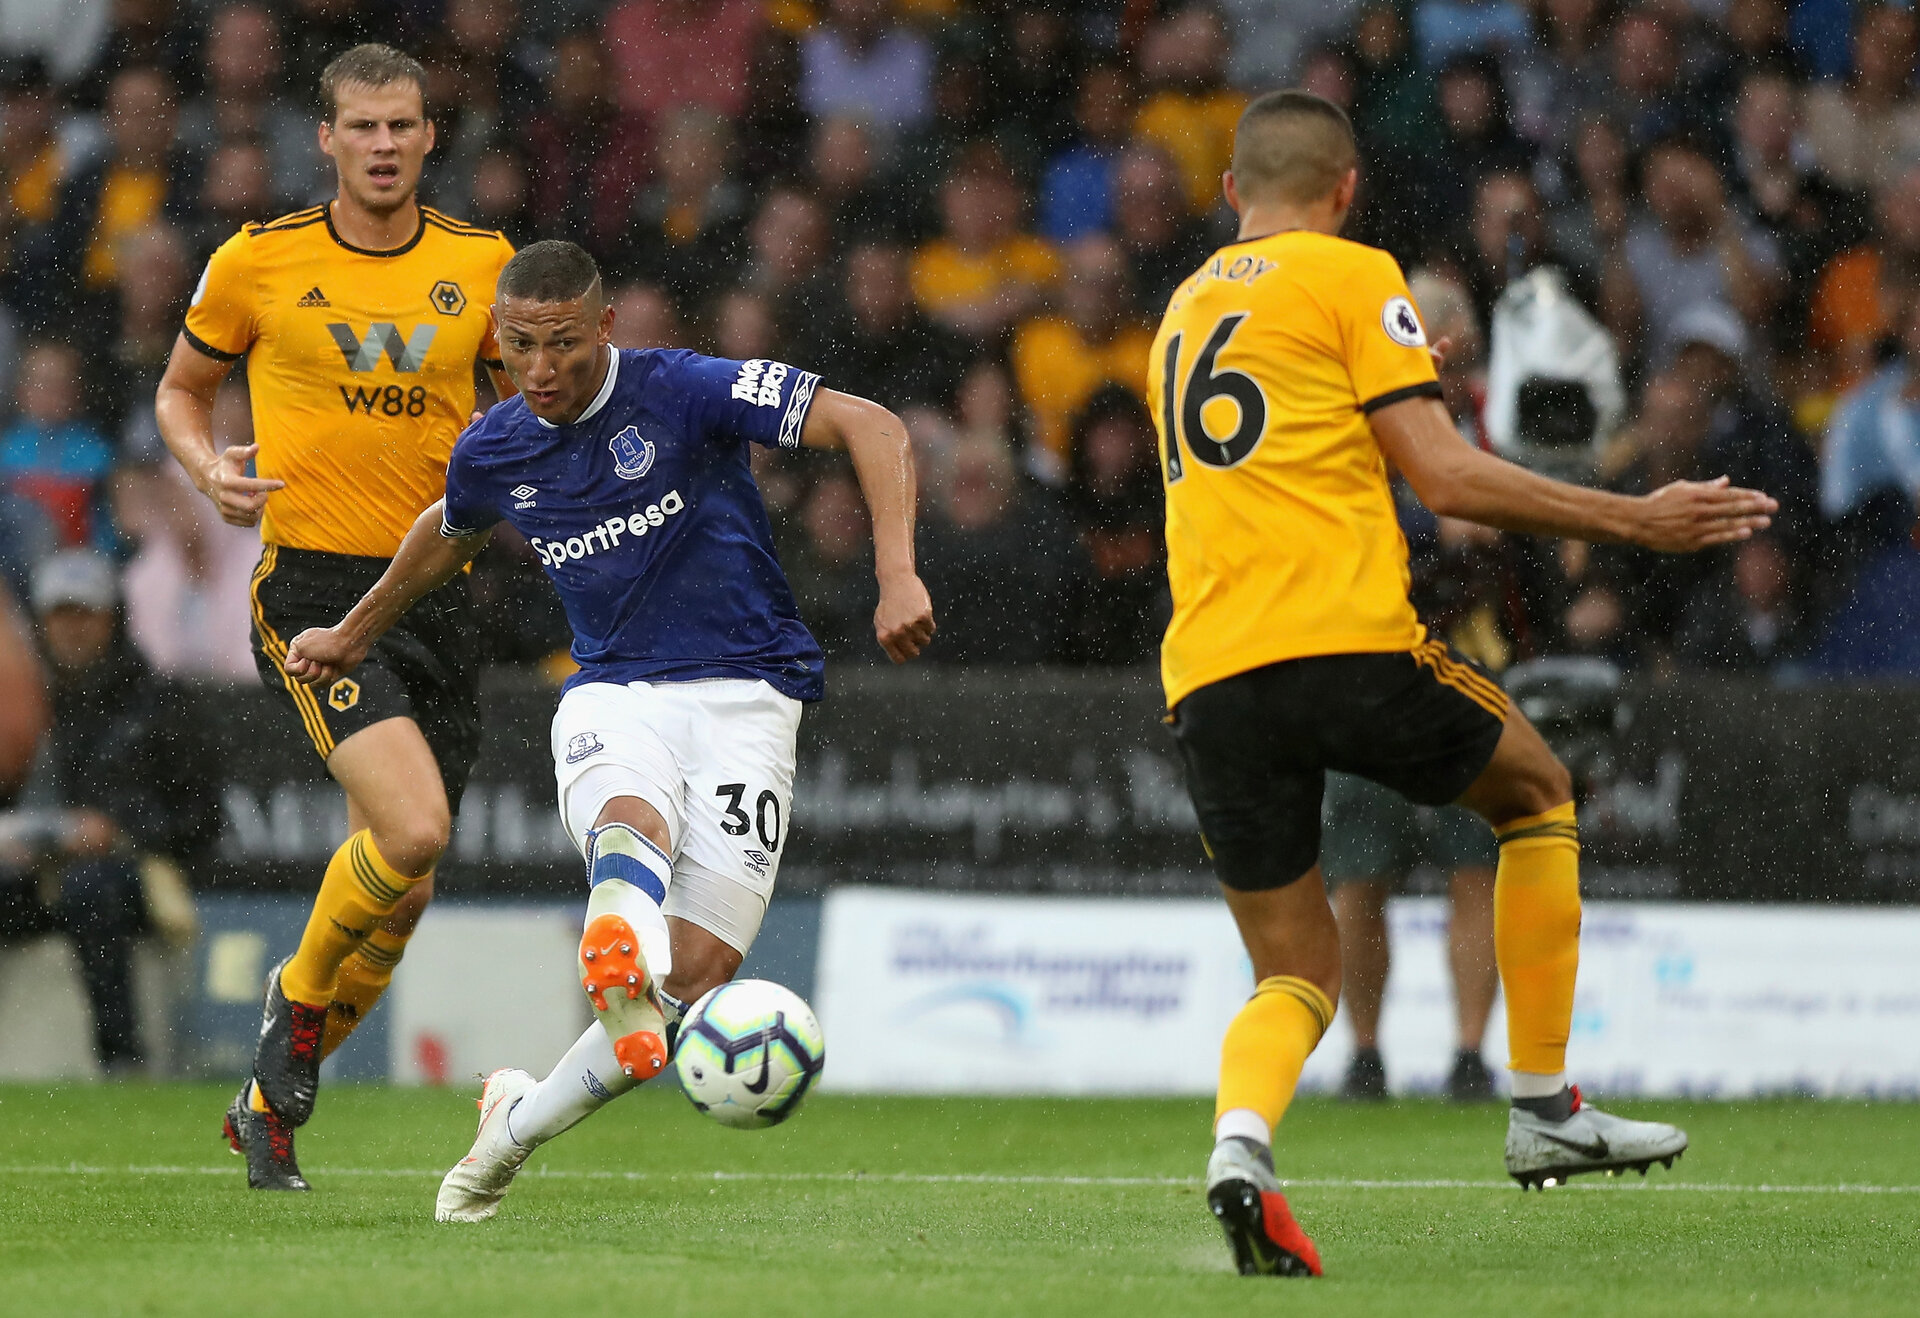 WOLVERHAMPTON, ENGLAND - AUGUST 11:  Richarlison of Everton scores his and Everton's second goal during the Premier League match between Wolverhampton Wanderers and Everton FC at Molineux on August 11, 2018 in Wolverhampton, United Kingdom.  (Photo by David Rogers/Getty Images)